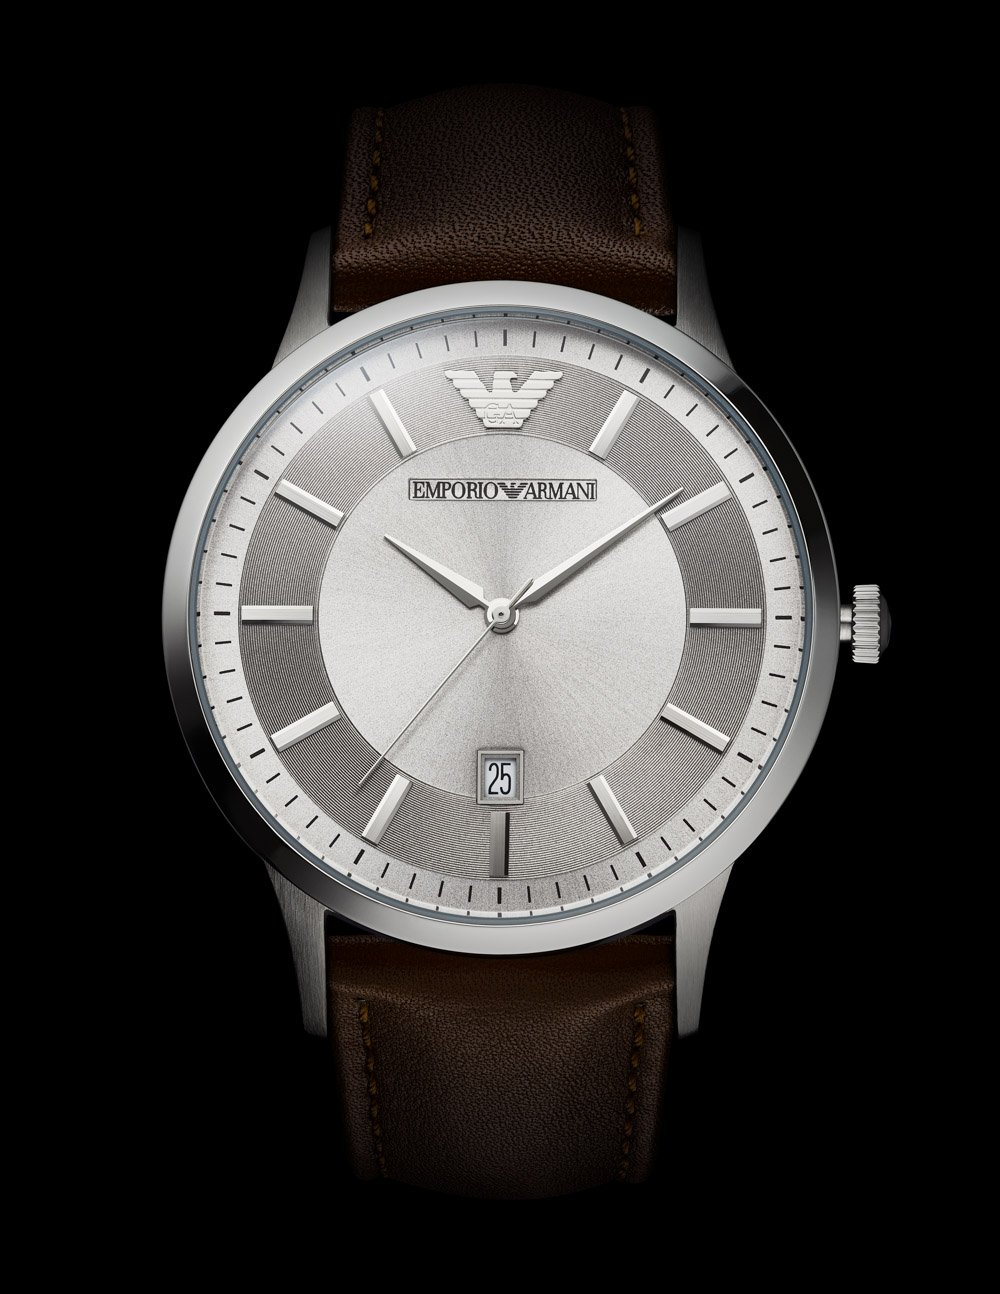 A silver Emporio Armani watch can be seen against a dark background. Demonstrating photographing glossy surface in watch photography